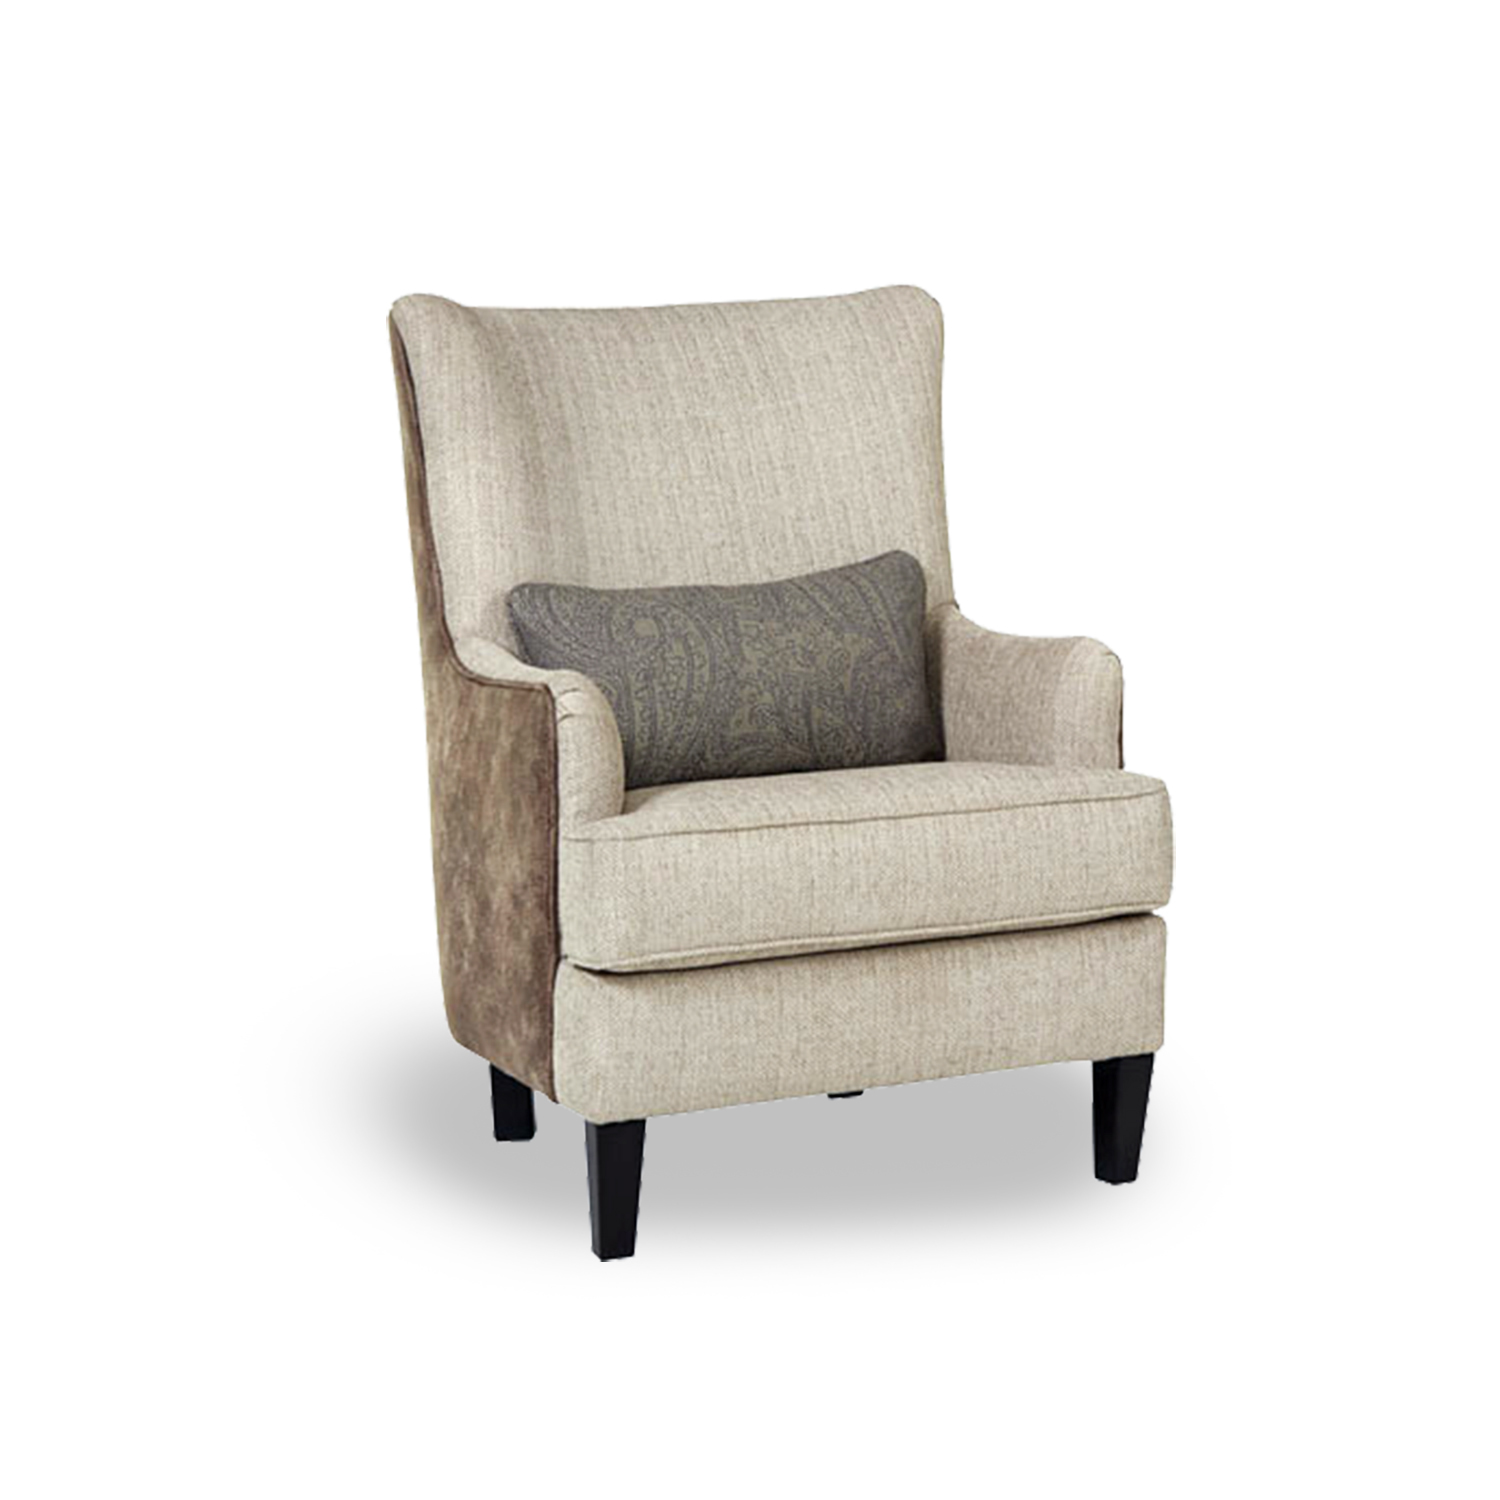 Accent Chair 4110121